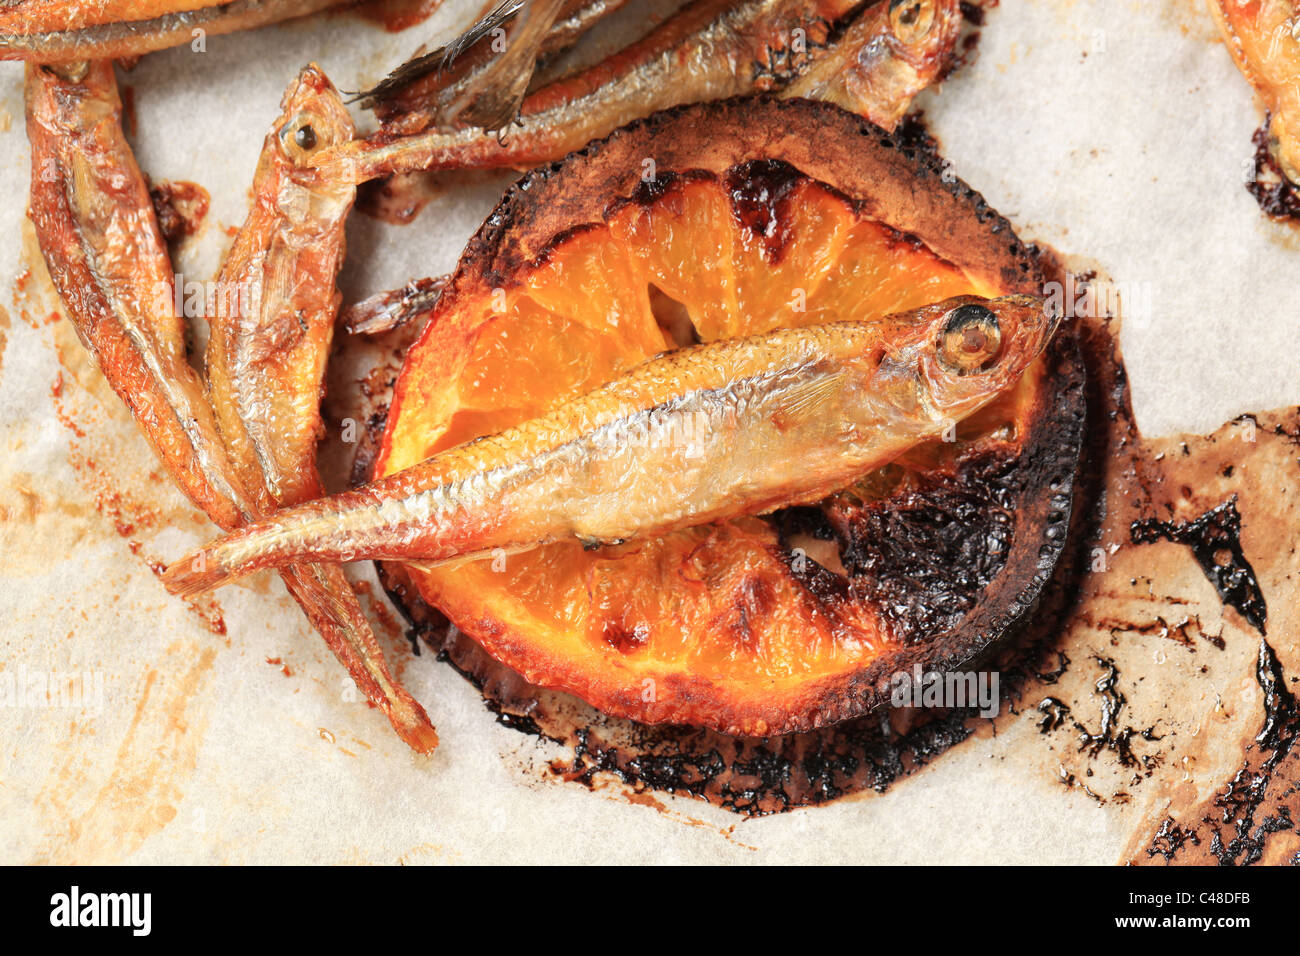 Spicy fried anchovies and slice of lemon - detail - Stock Image